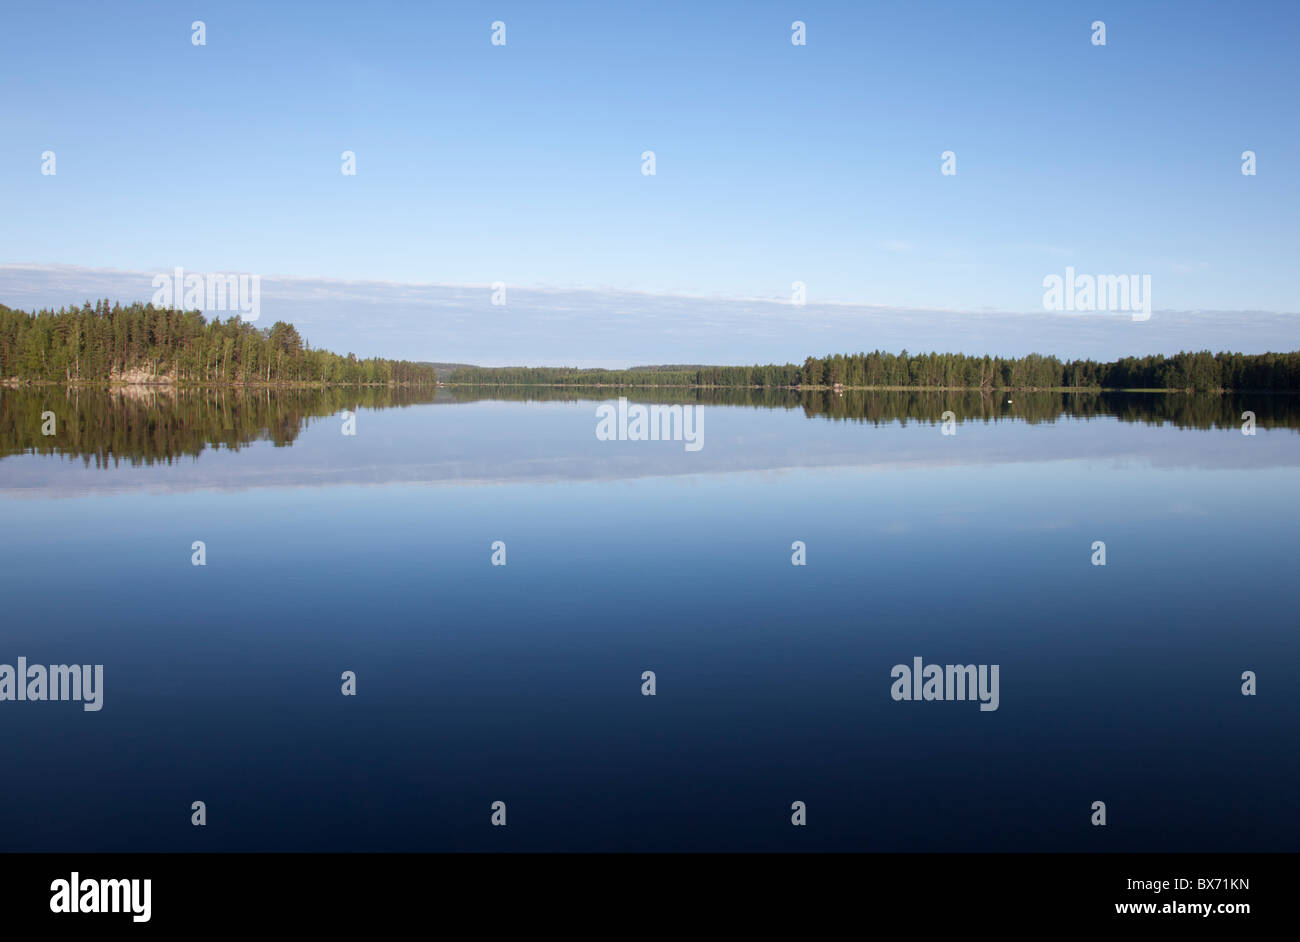 View of Lake Ahveninen Finland - Stock Image